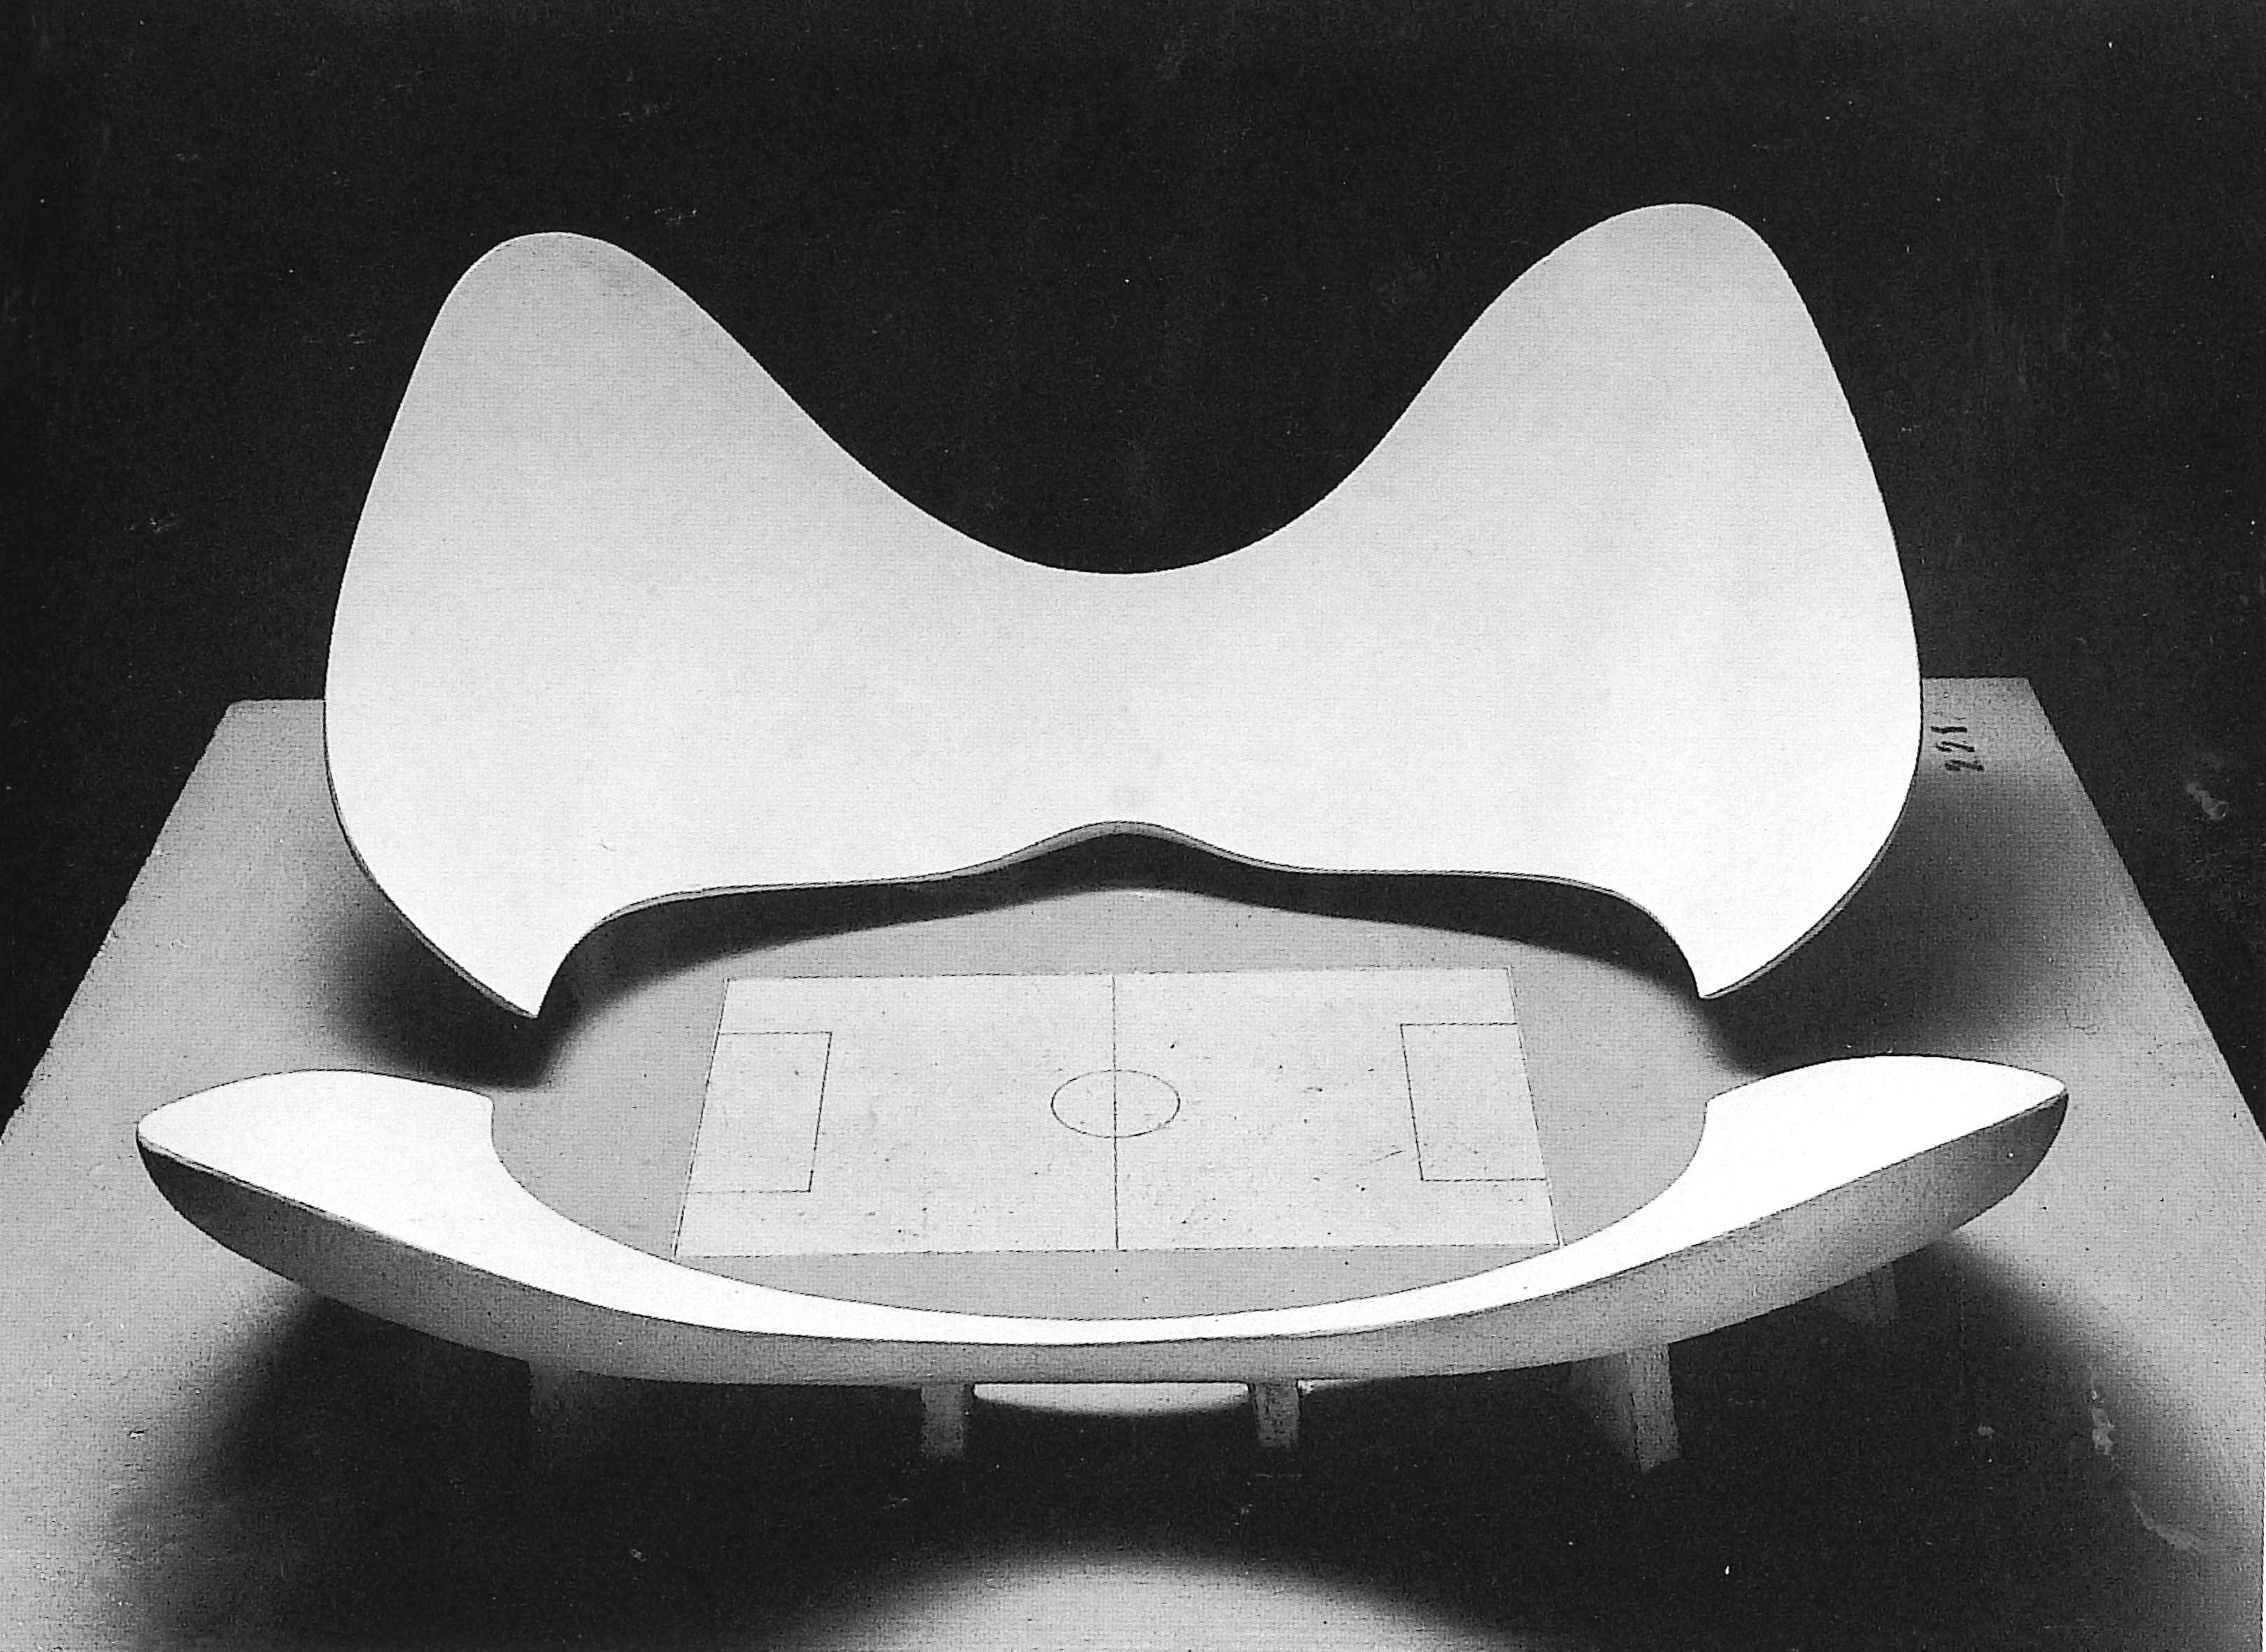 A model of stadium n by luigi moretti exhibited at the 1960 parametric architecture exhibition